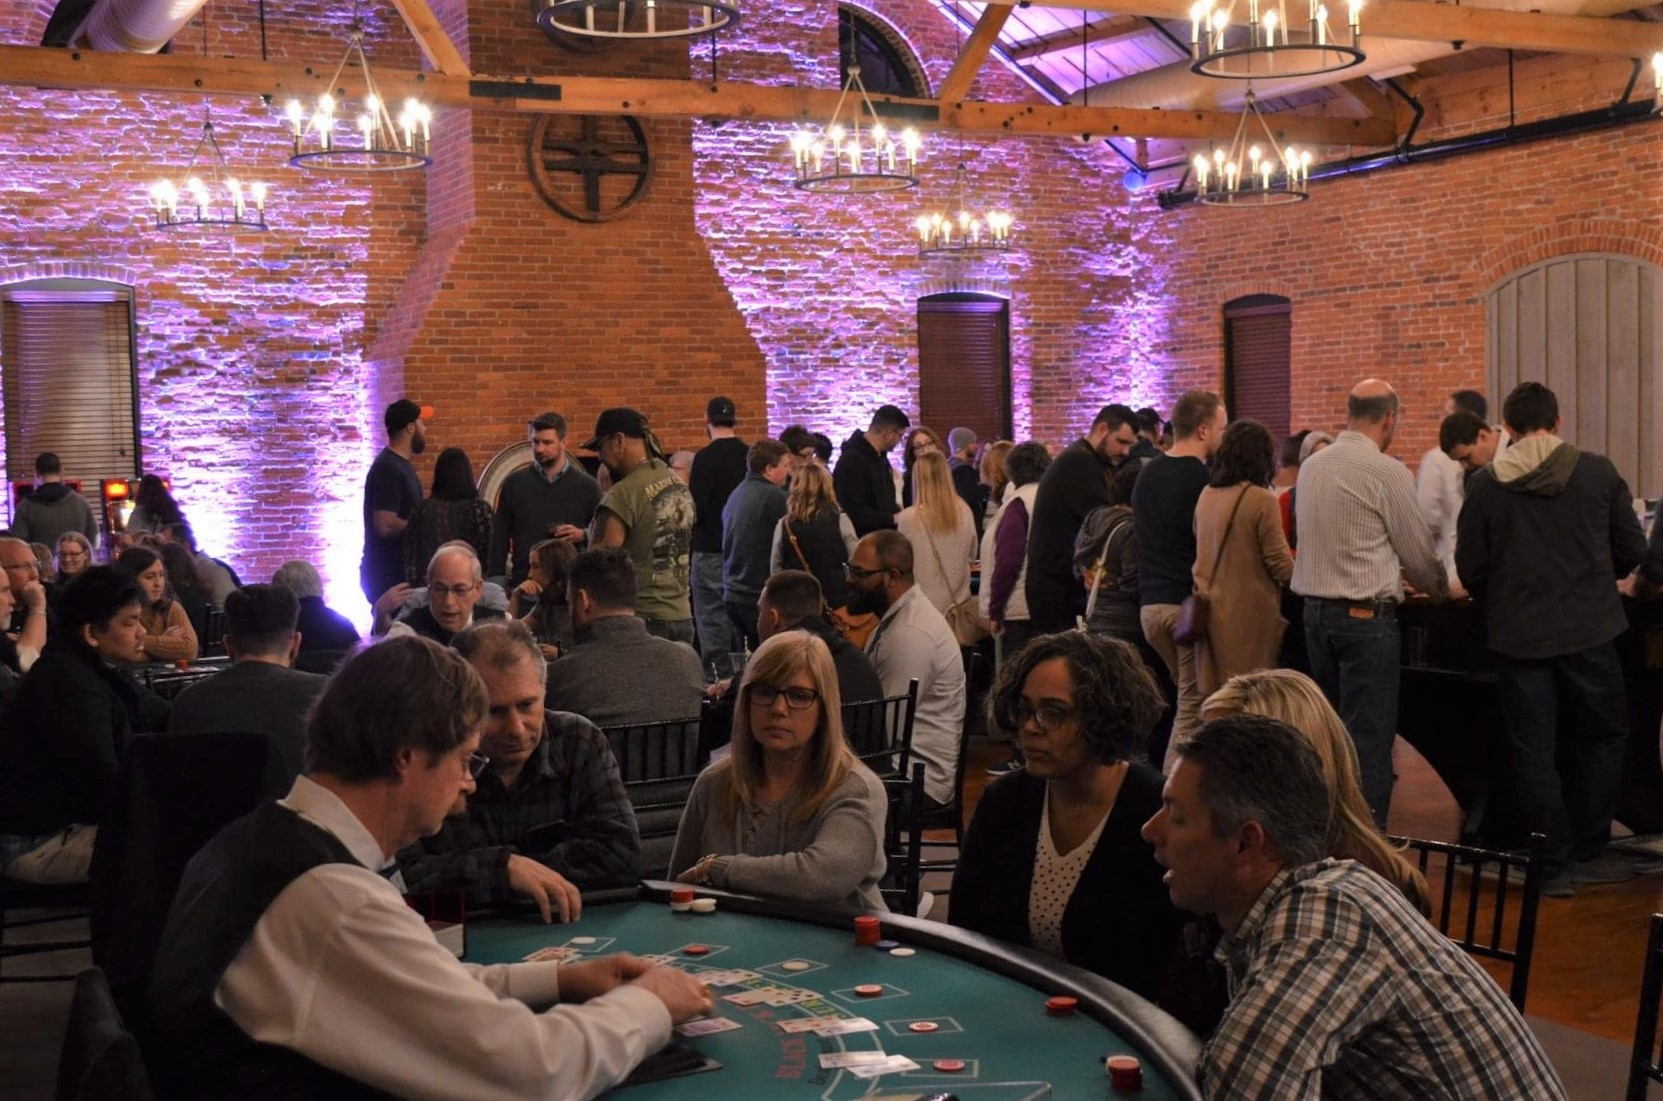 Players take part in a card game at a casino-themed fundraiser for The Mighty Mehal Foundation in February 2020. (Source: Provided)